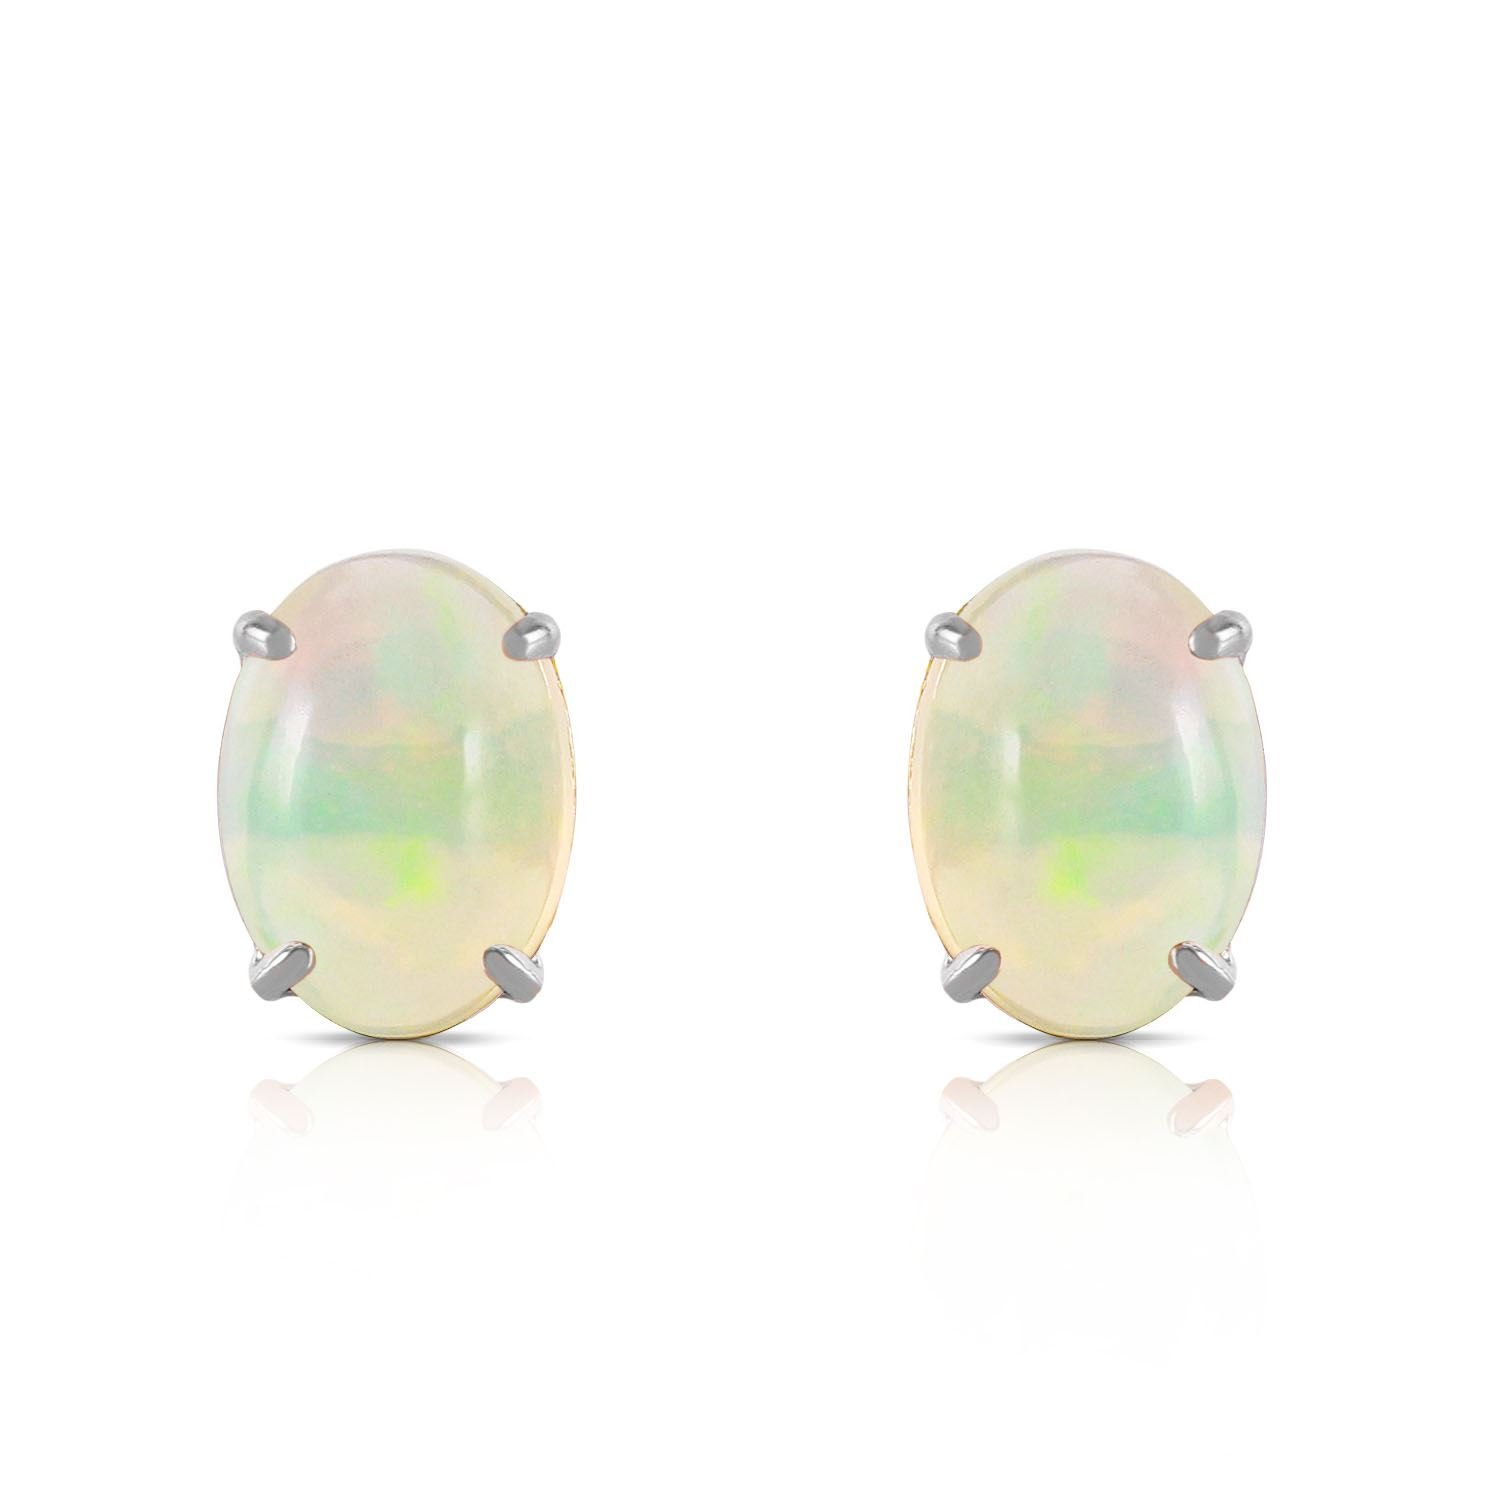 ALARRI 0.9 Carat 14K Solid White Gold Yours To Love Opal Earrings